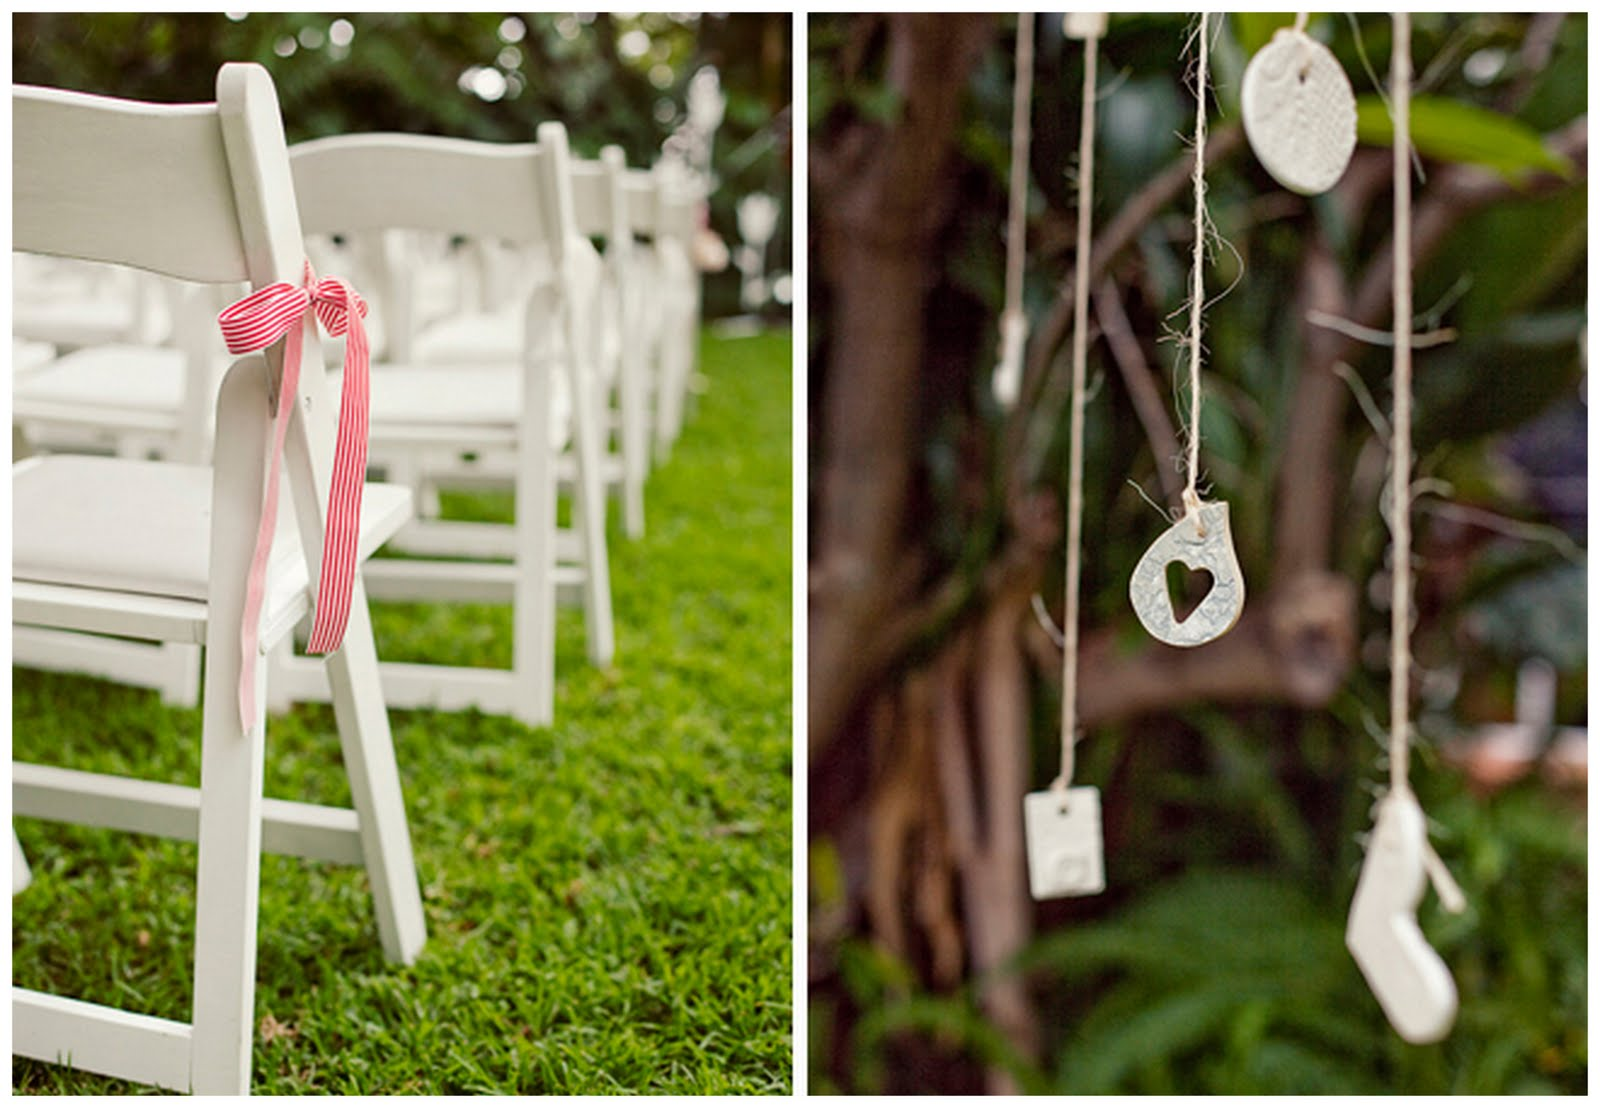 Outdoor Weddings Do Yourself Ideas: Enchanting South African Garden Wedding With DIY Details